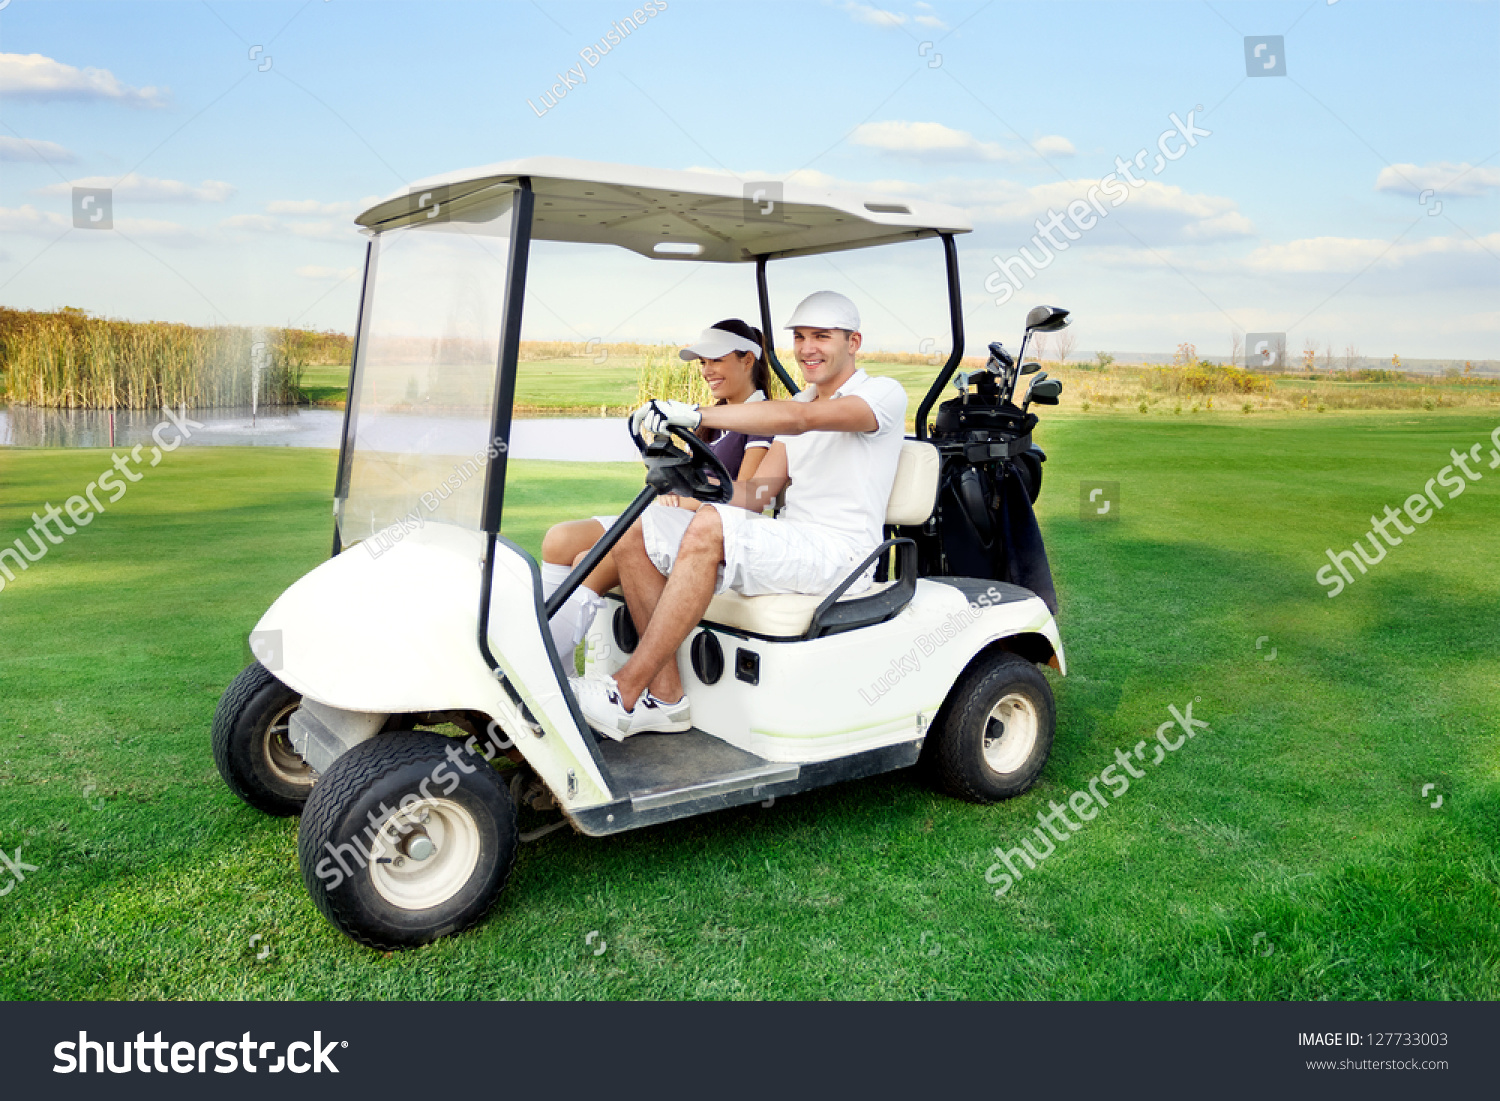 golf cart insurance turn signal switch wiring diagram smiling and happy couple driving a with clubs on